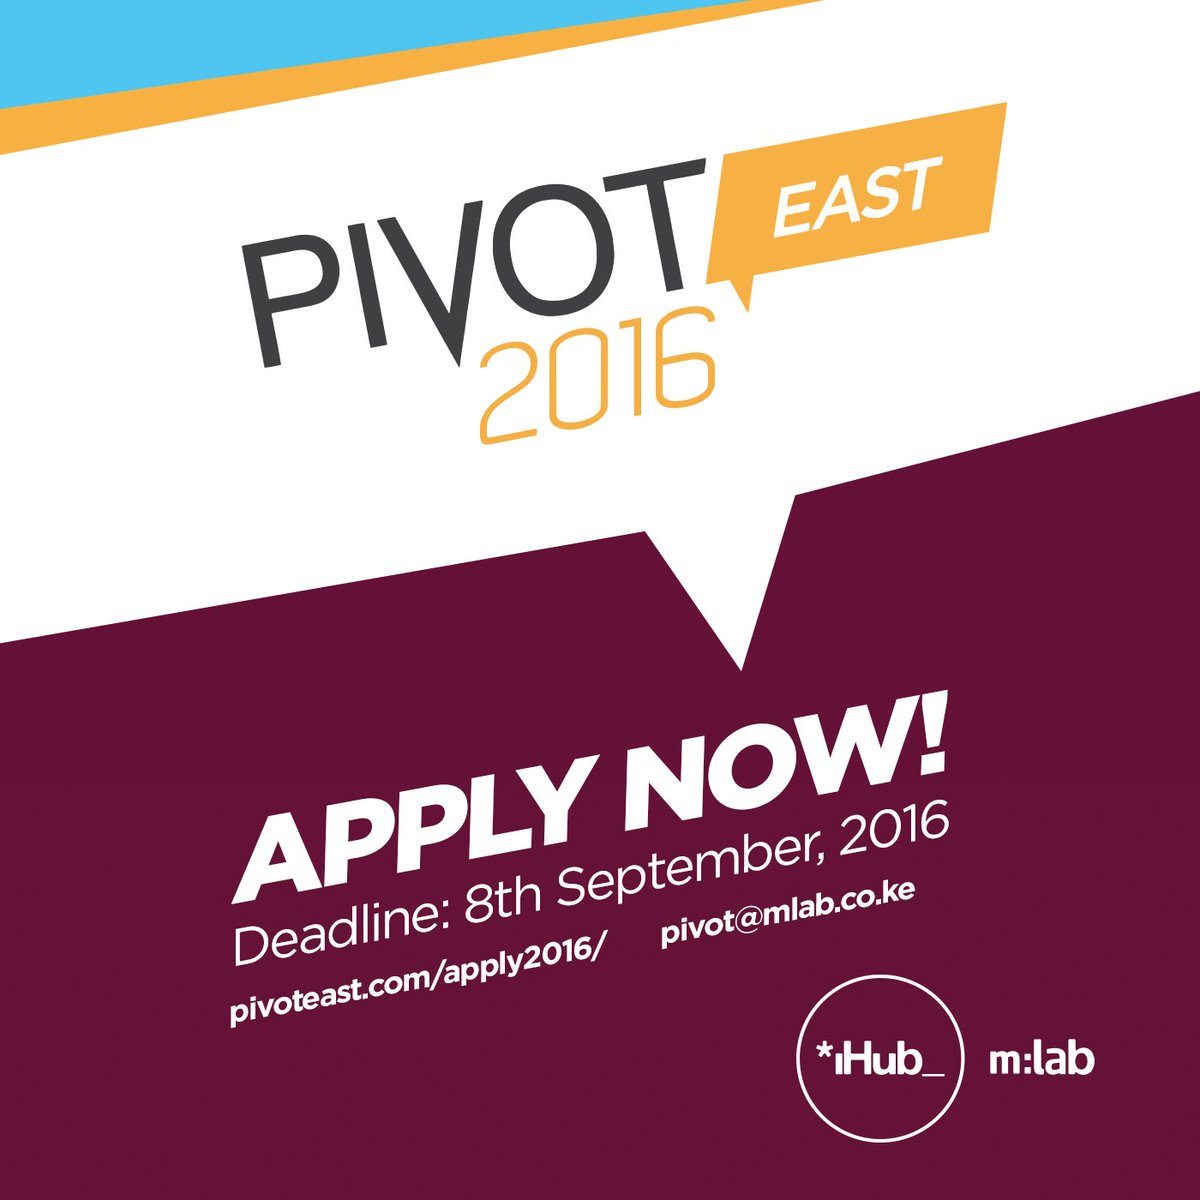 #Startups looking to compete @PIVOTEast 2016, the call for applications is ongoing. Apply now https://t.co/VQg6vwui9W